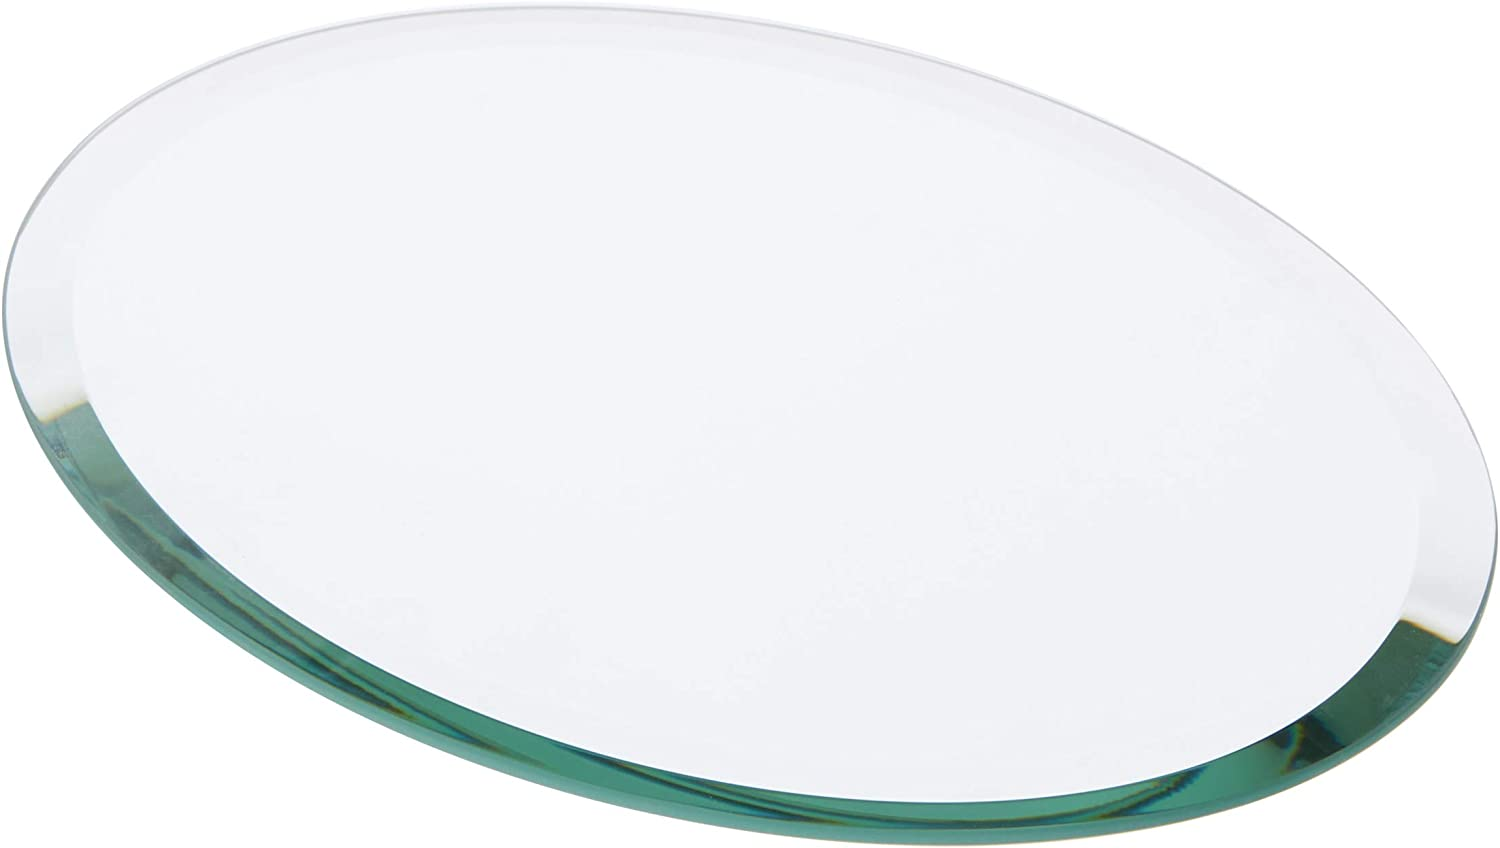 Max 42% OFF Plymor Oval 5mm Beveled Glass Mirror x inch 7 Spring new work 9